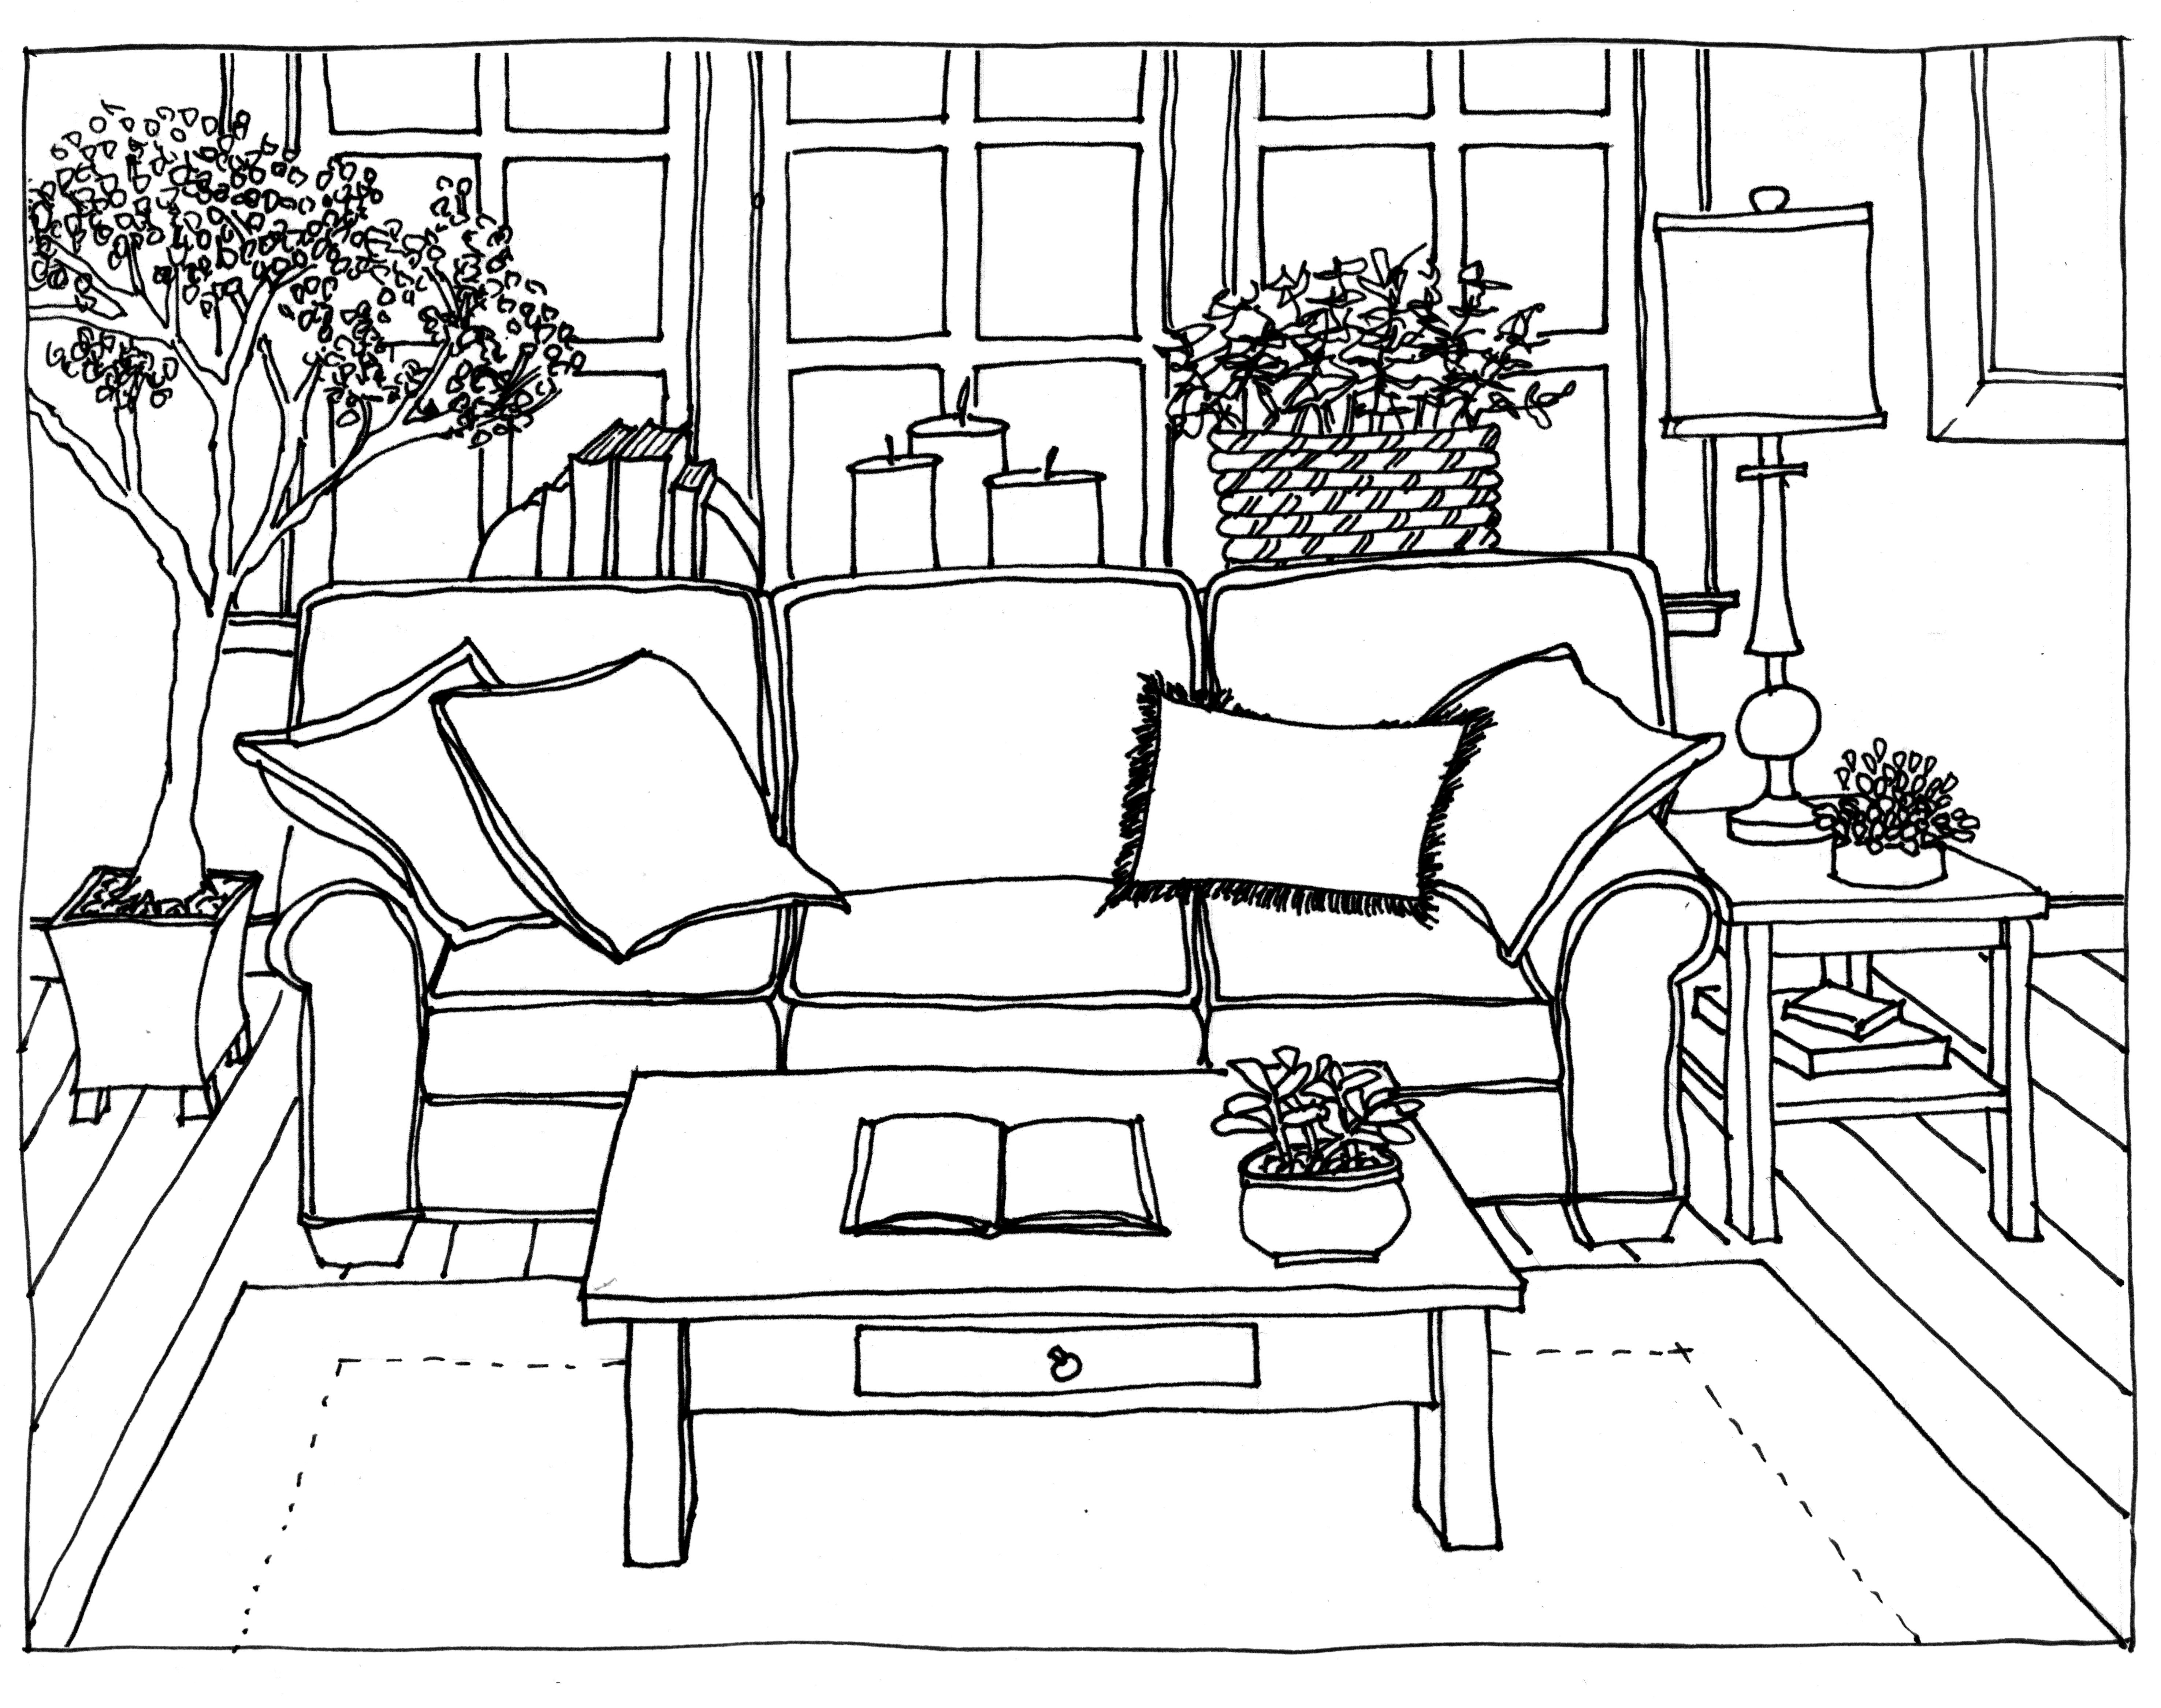 Drawing Your Living Room | Conceptstructuresllc.com